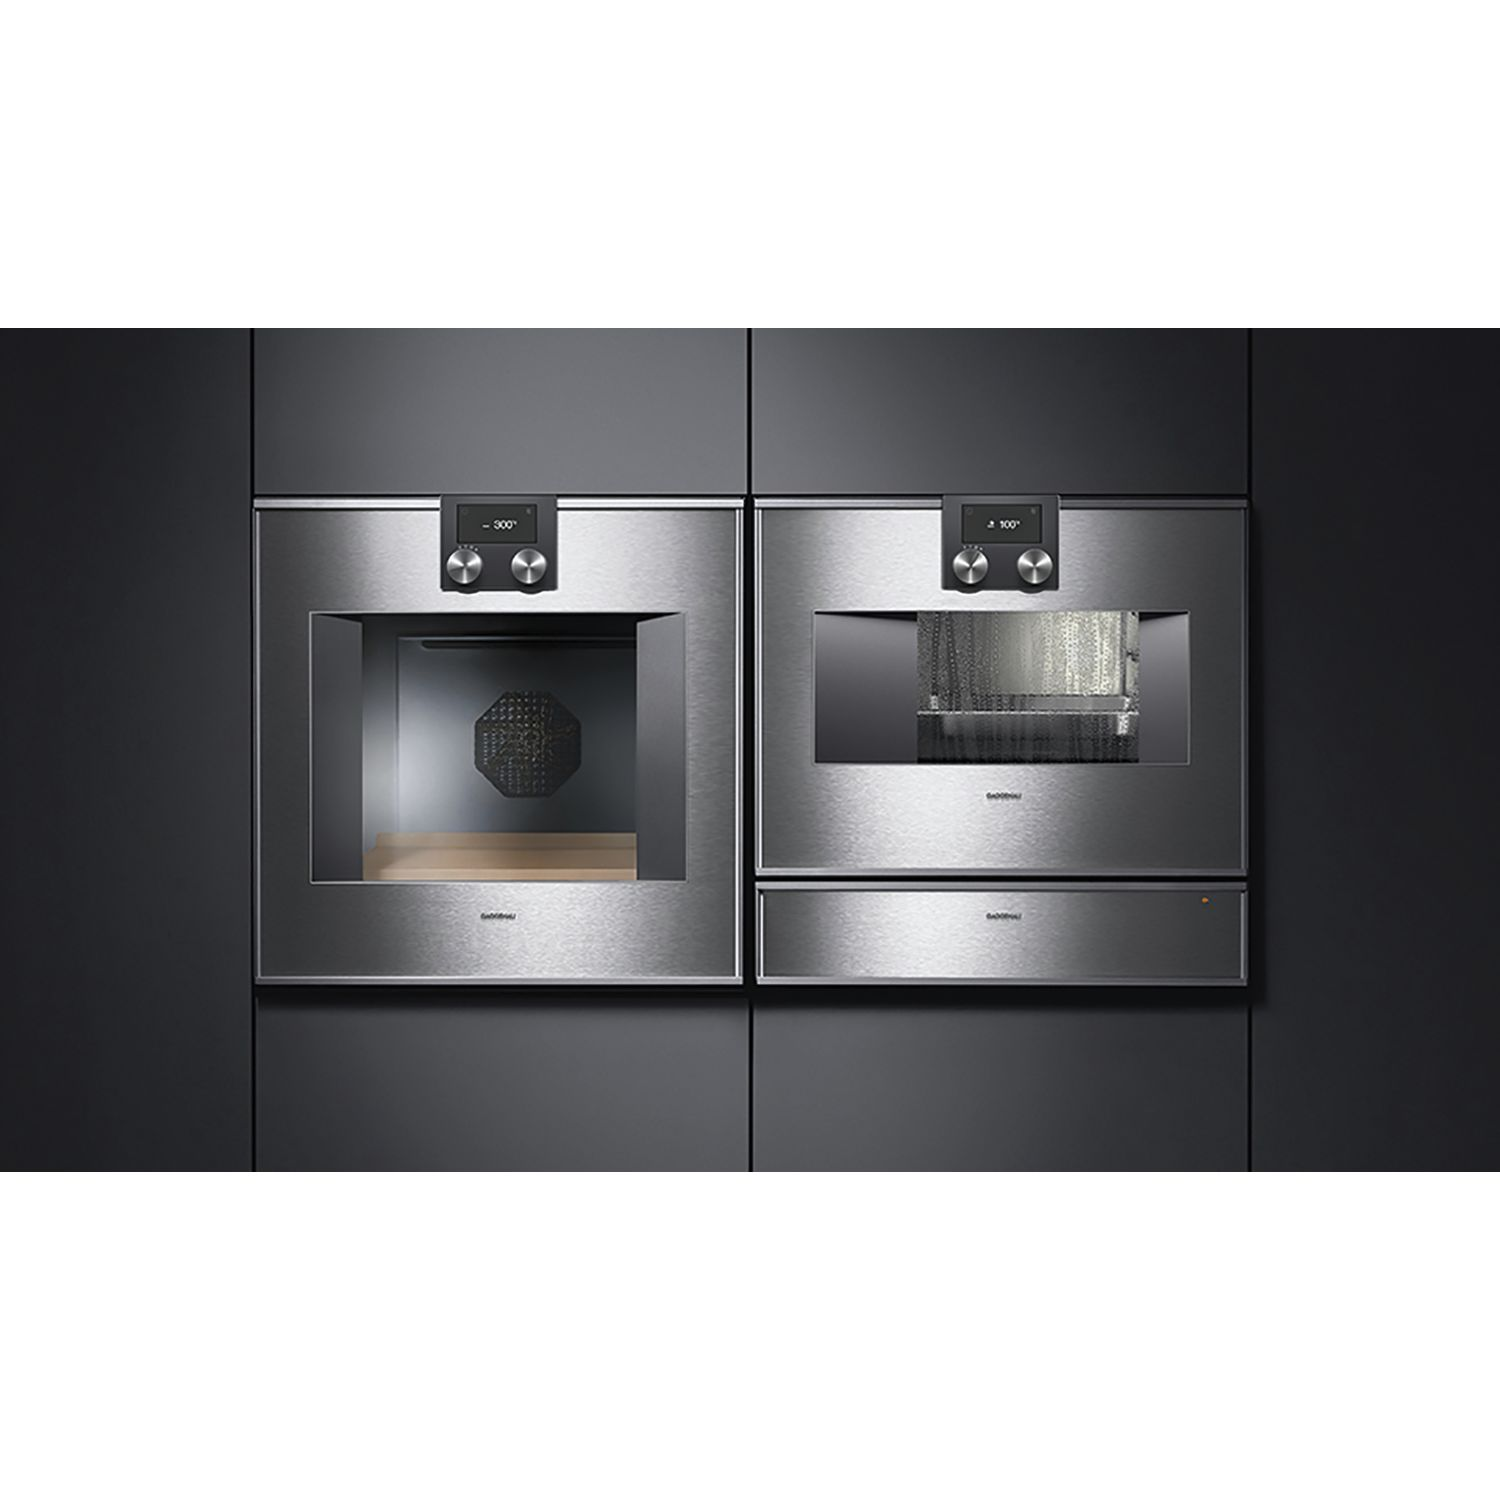 backofen gaggenau test gaggenau dampfgarer backofen kaffeevollautomat used design gaggenau. Black Bedroom Furniture Sets. Home Design Ideas